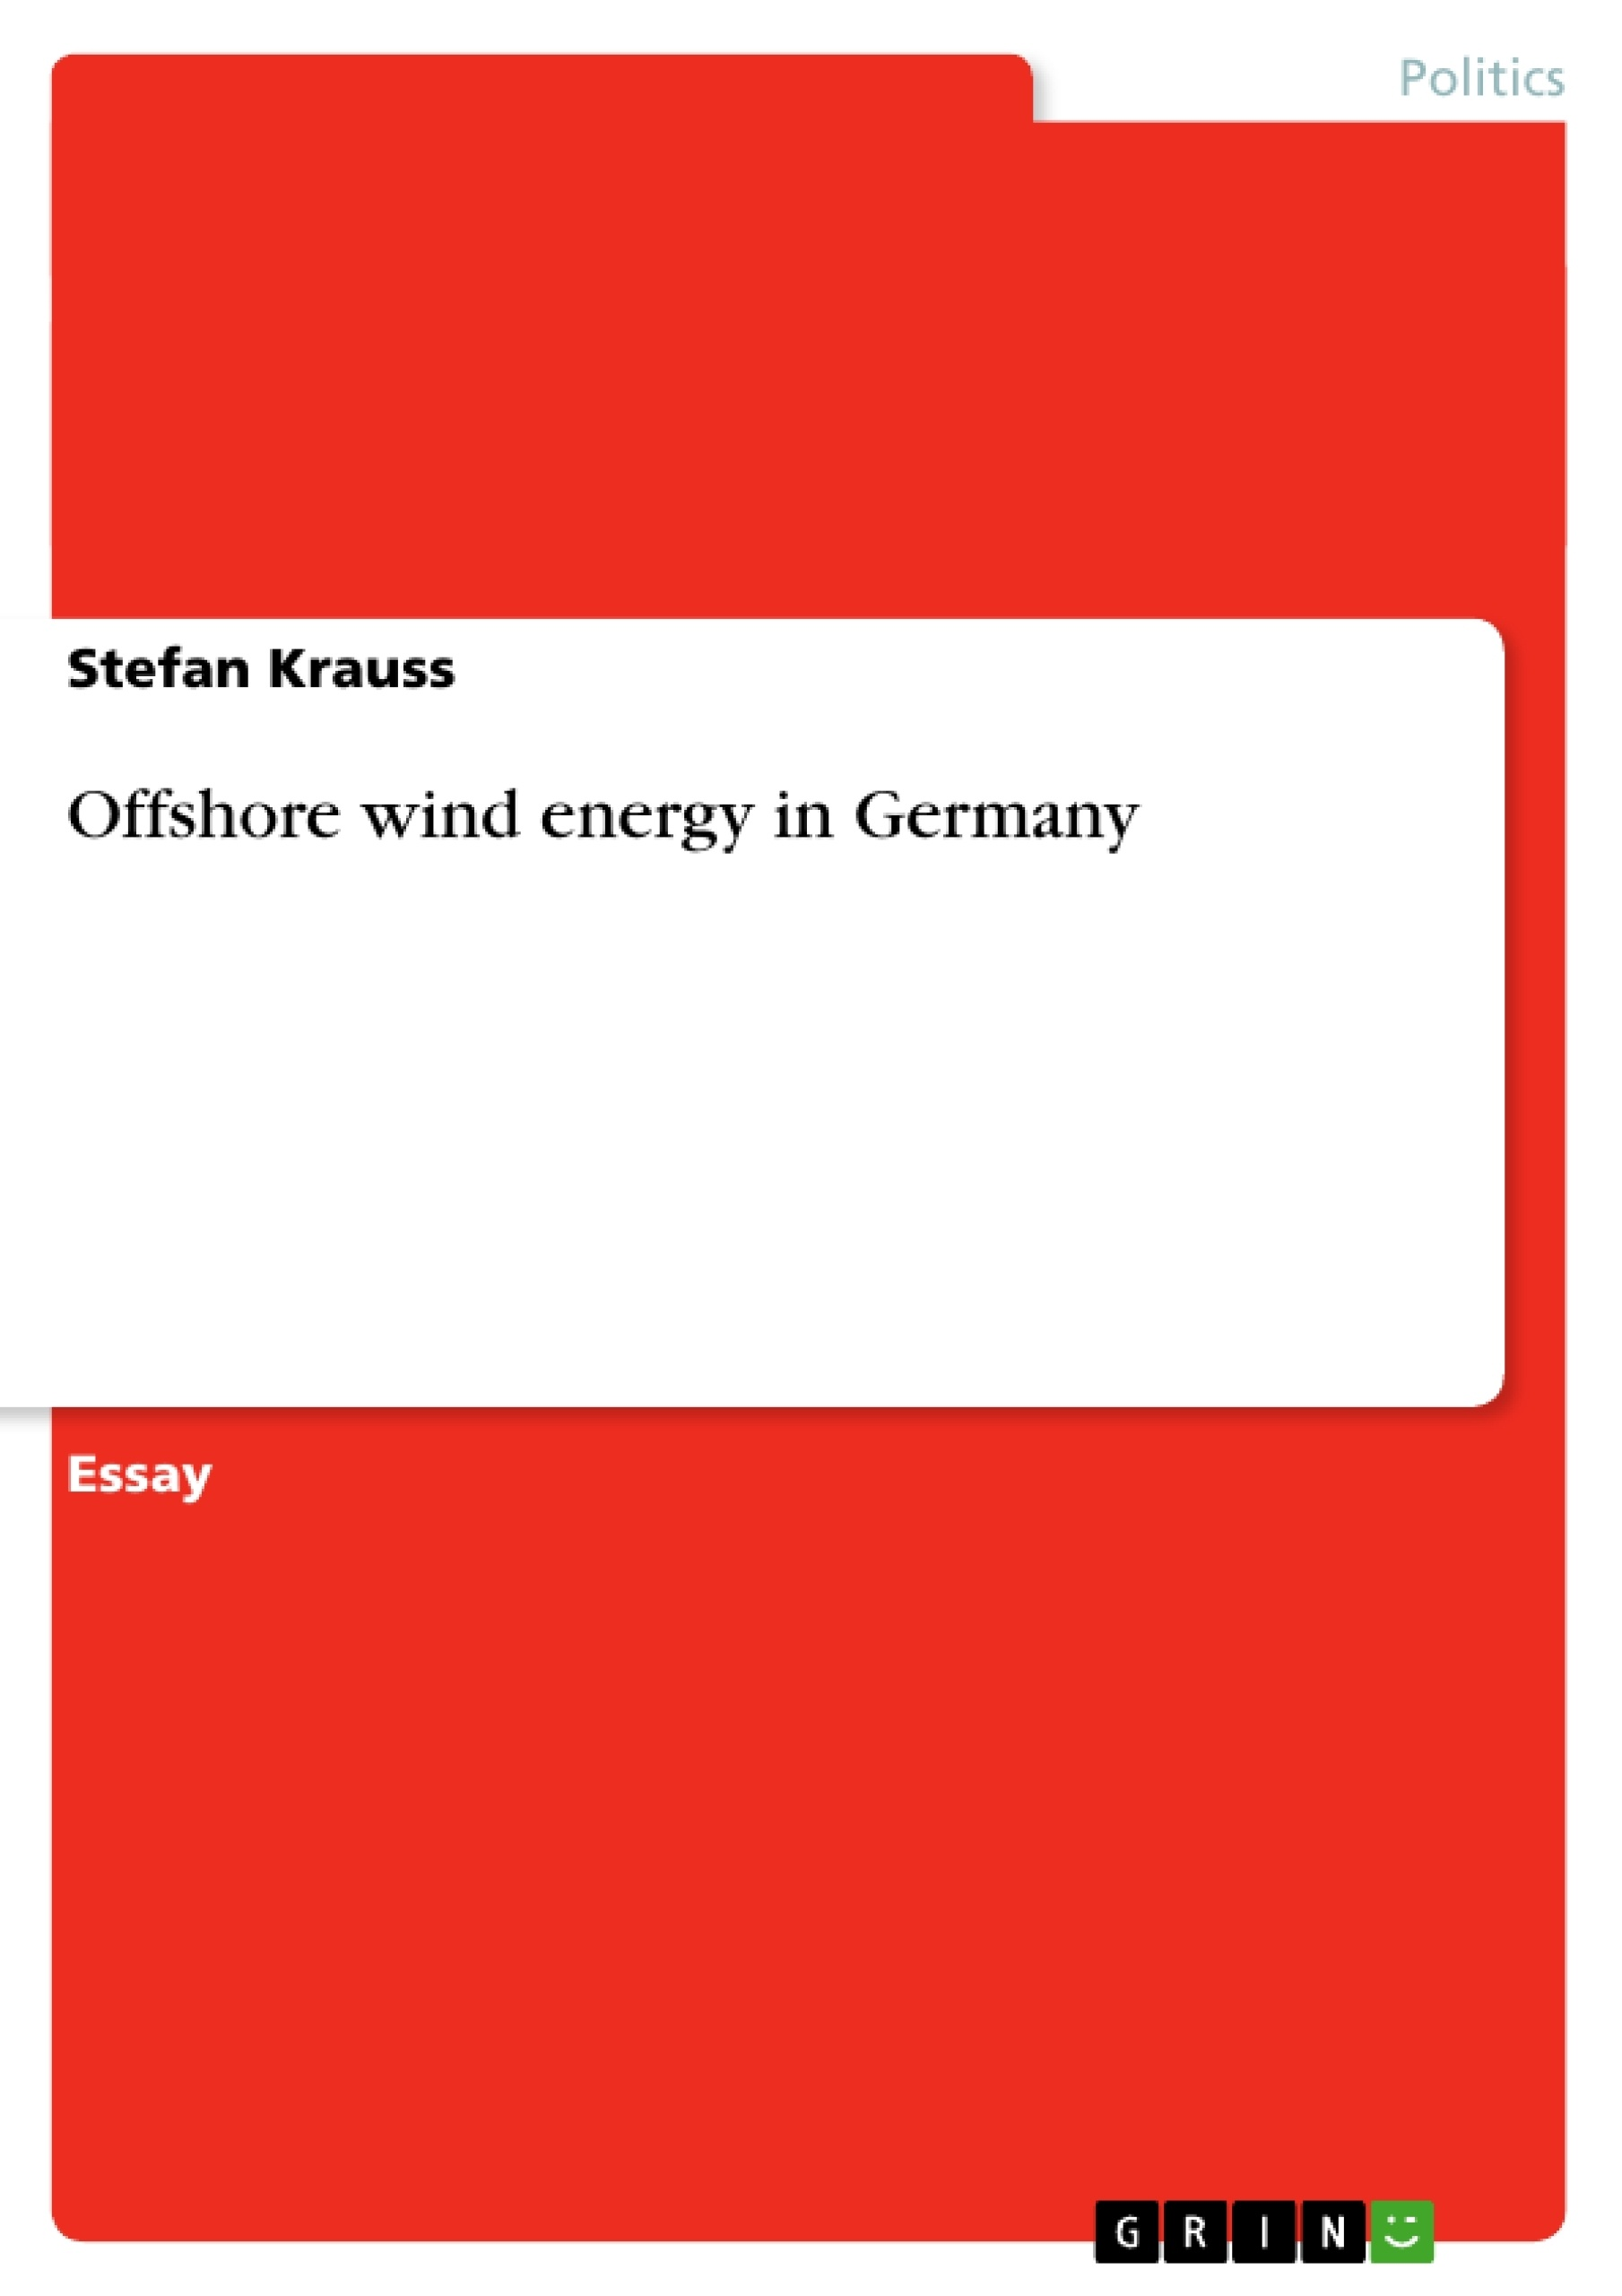 Title: Offshore wind energy in Germany